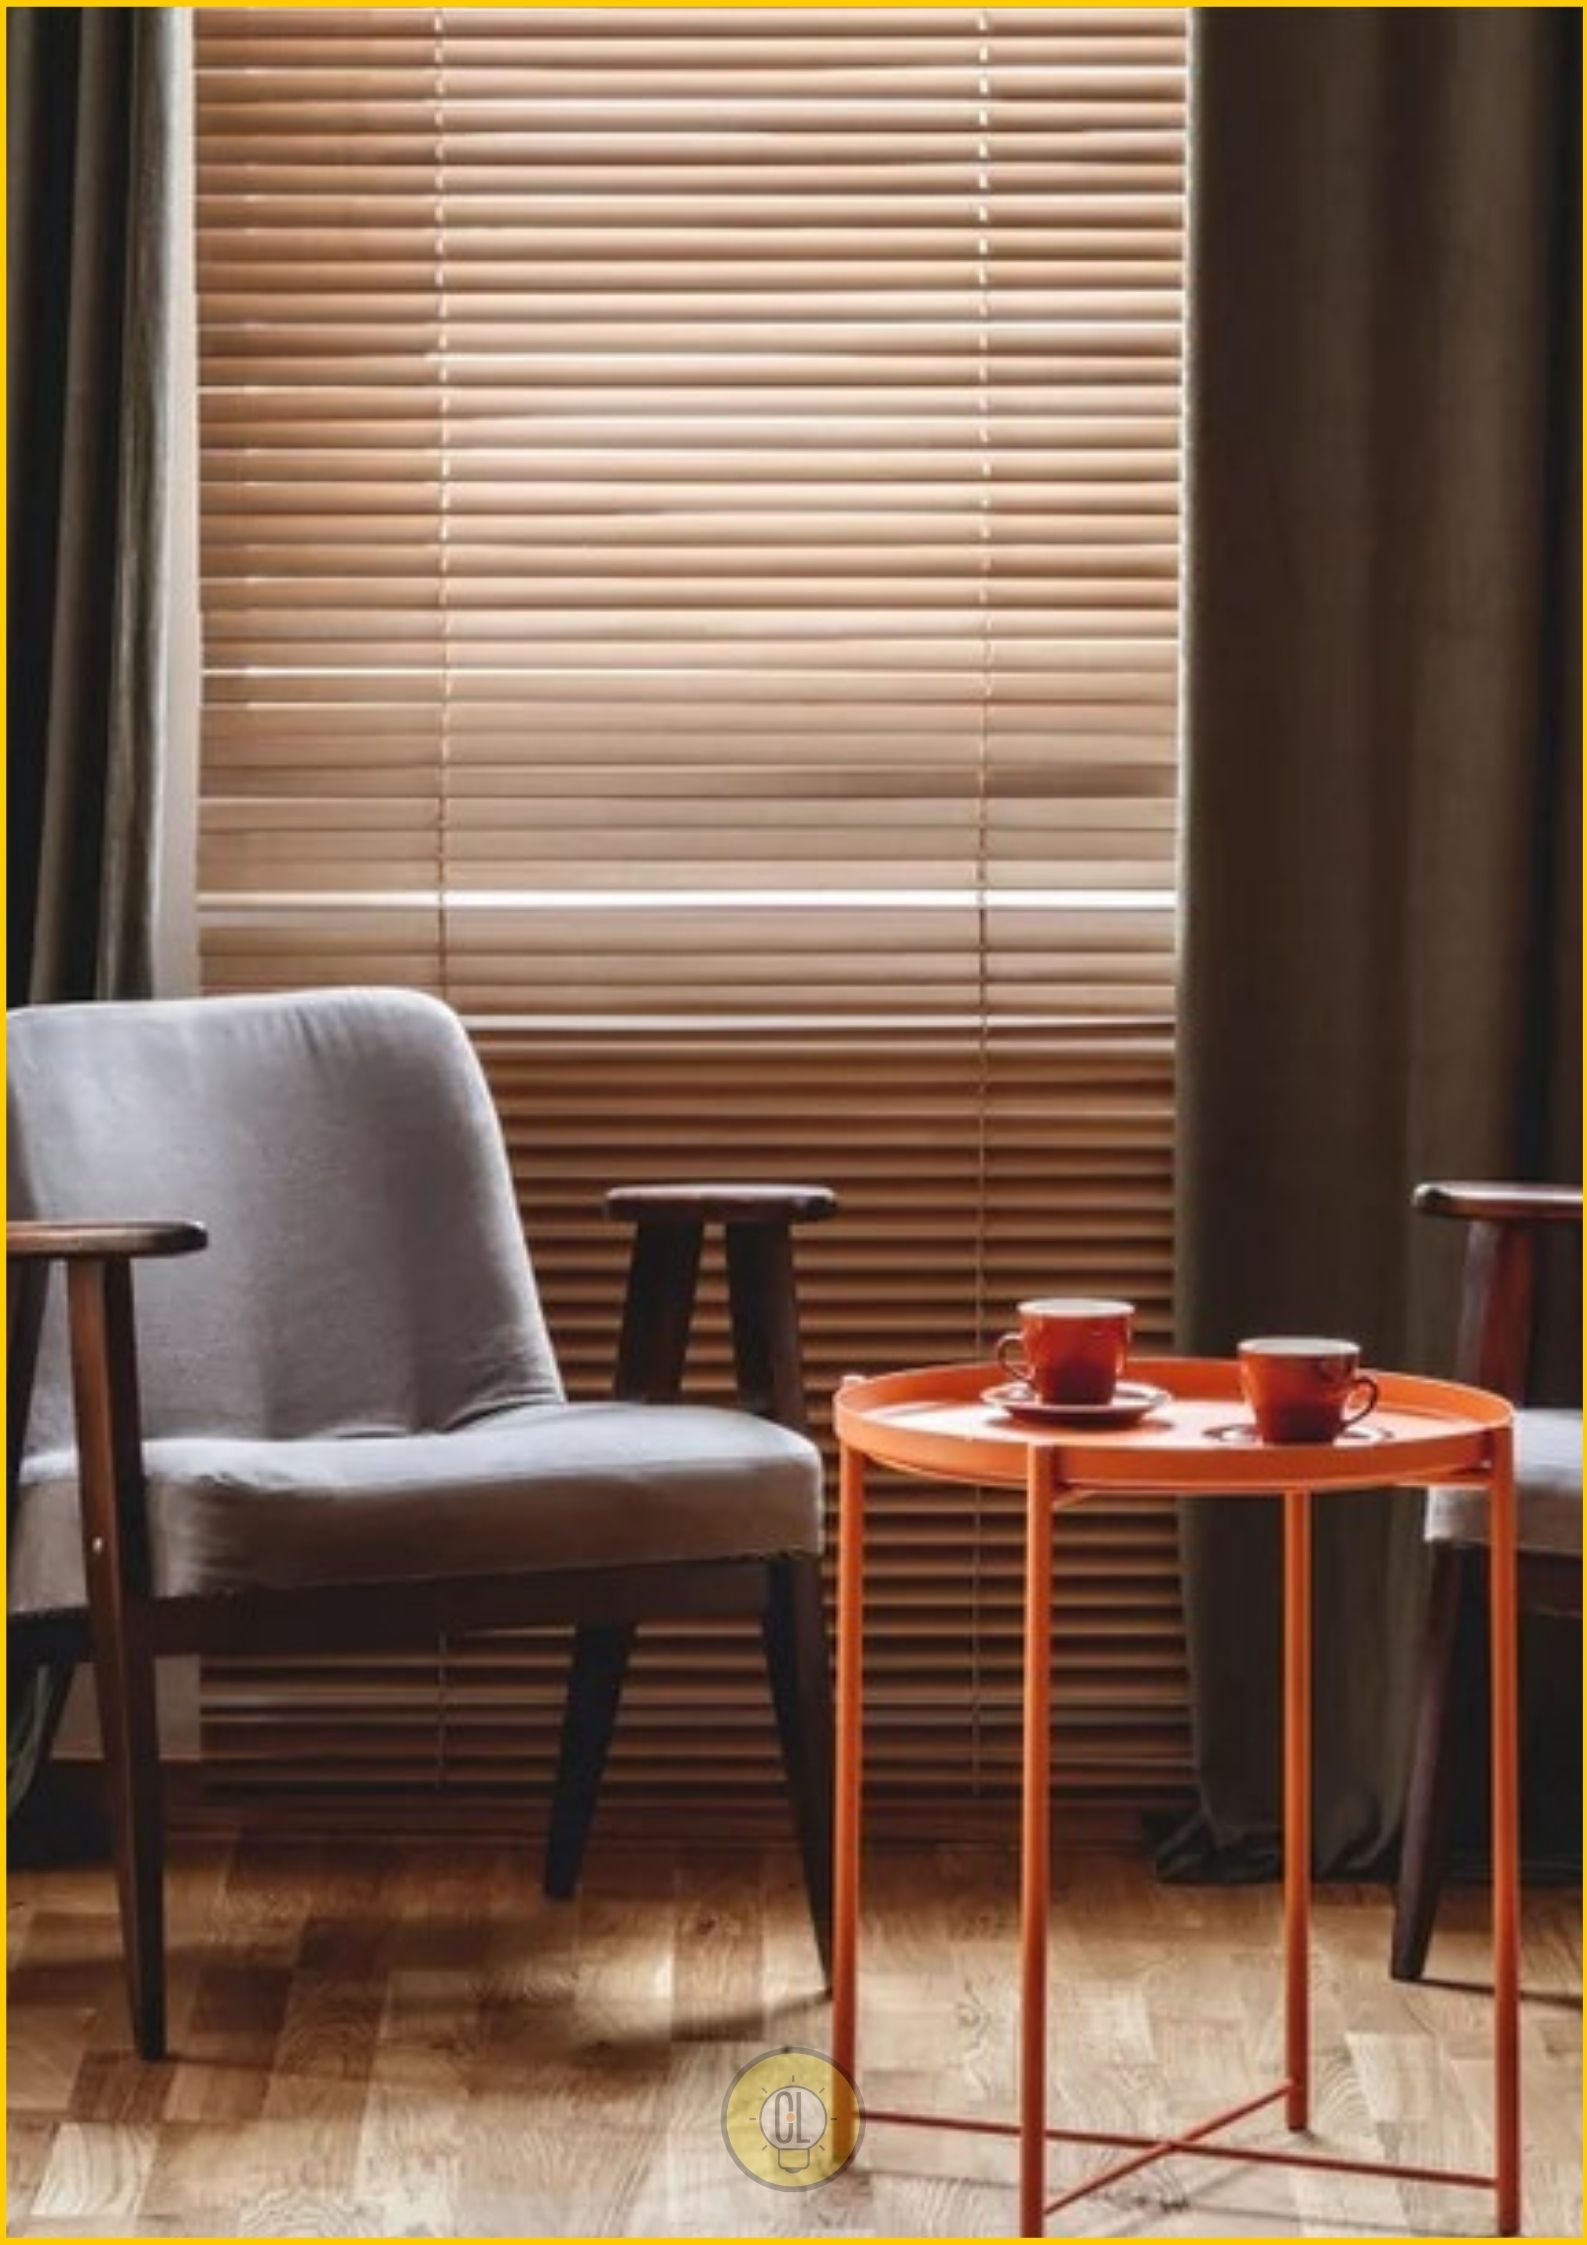 wooden window blinds home decor